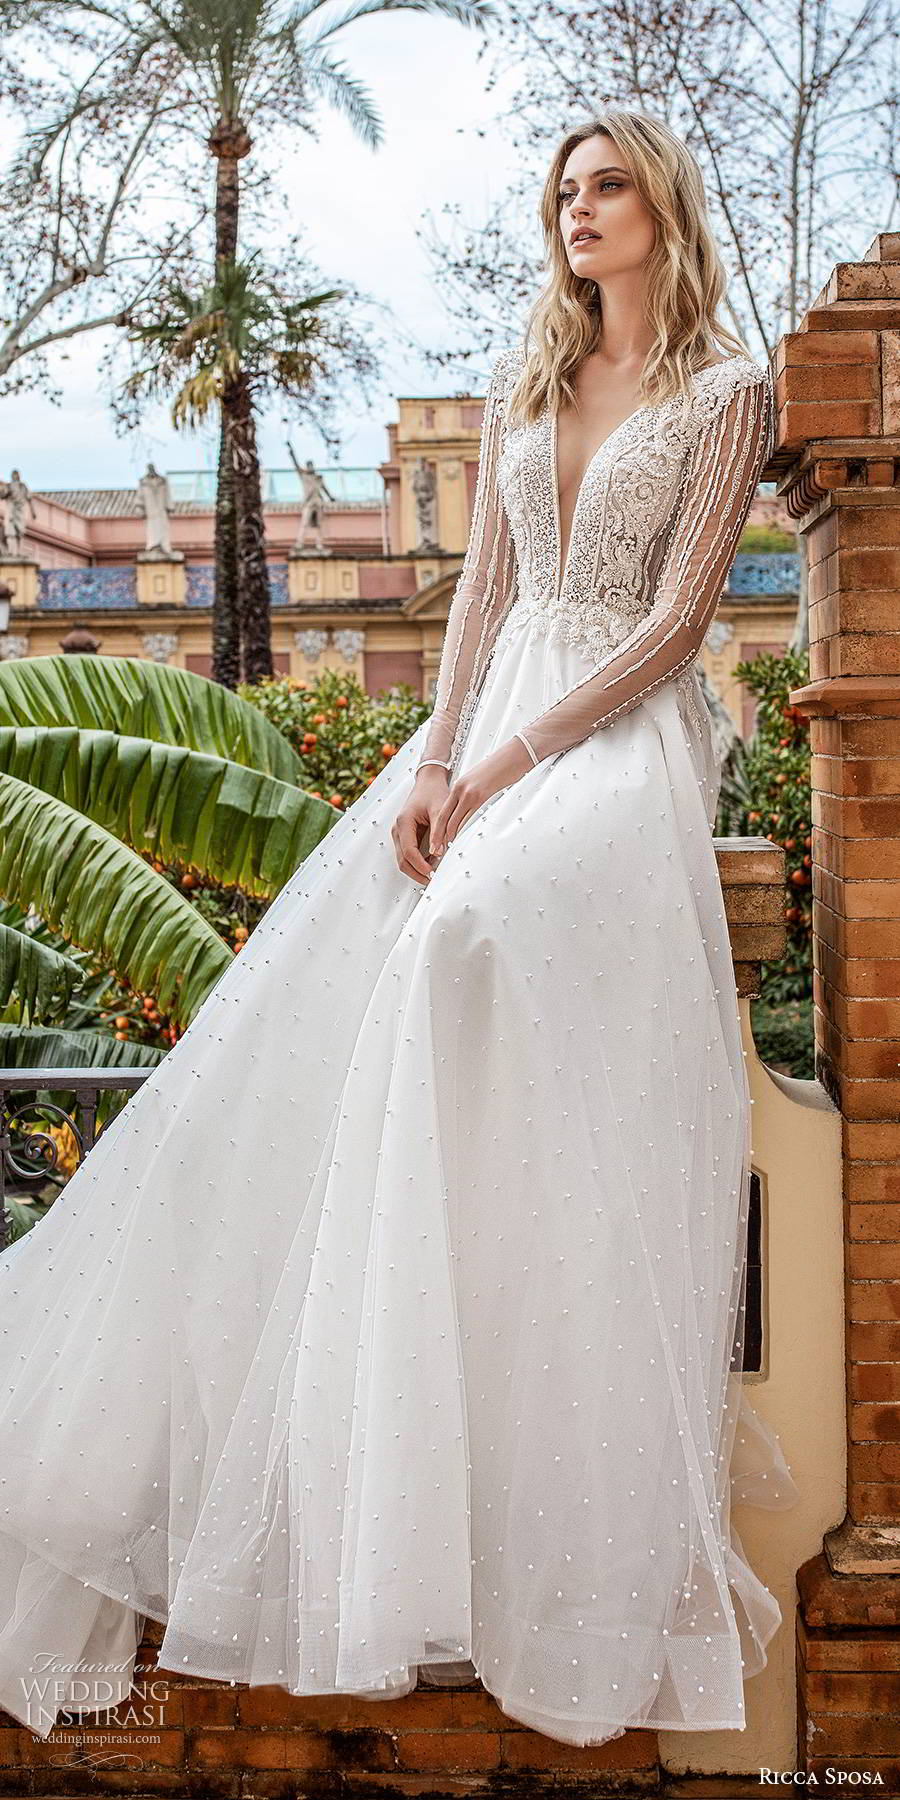 ricca sposa 2019 bridal illusion long sleeves plunging v neckline embellishd bodice glitzy romantic a line ball gown wedding dress v back chapel train (14) mv